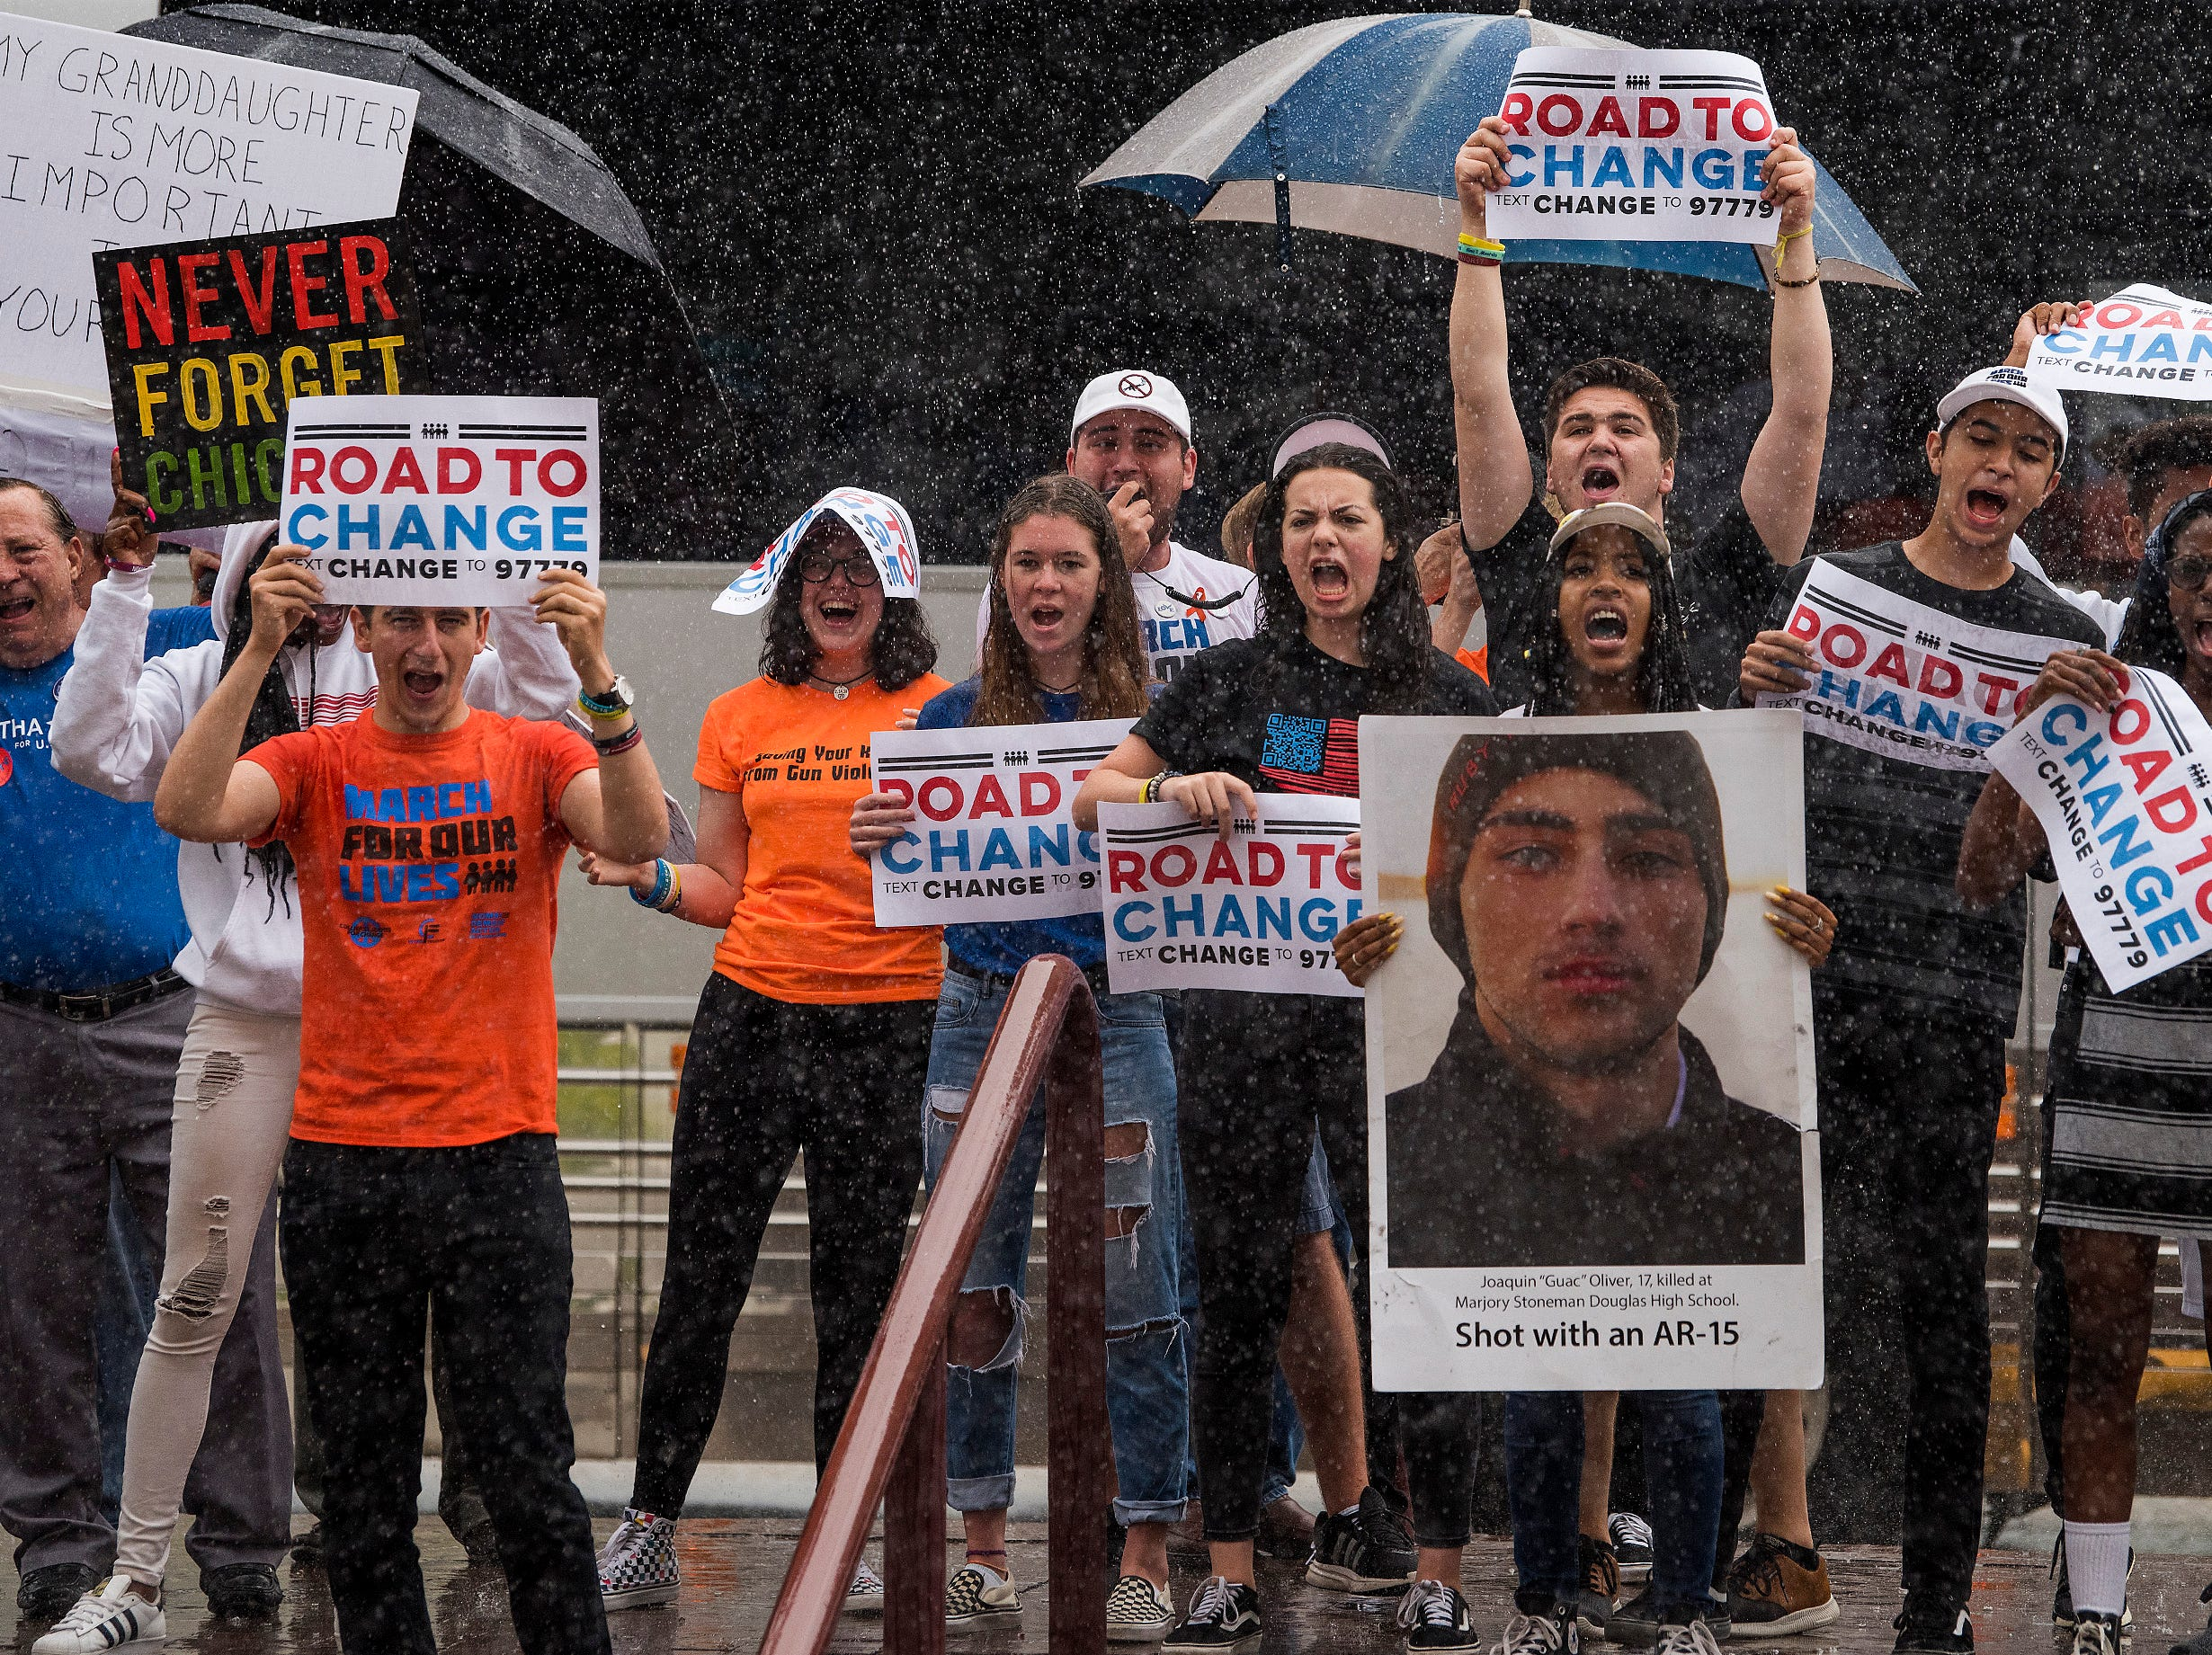 Survivors from the Parkland School shooting and gun violence protestors stop at the Alabama Statehouse in Montgomery, Ala. on Wednesday August 31, 2018 as part of the Road to Change Tour.